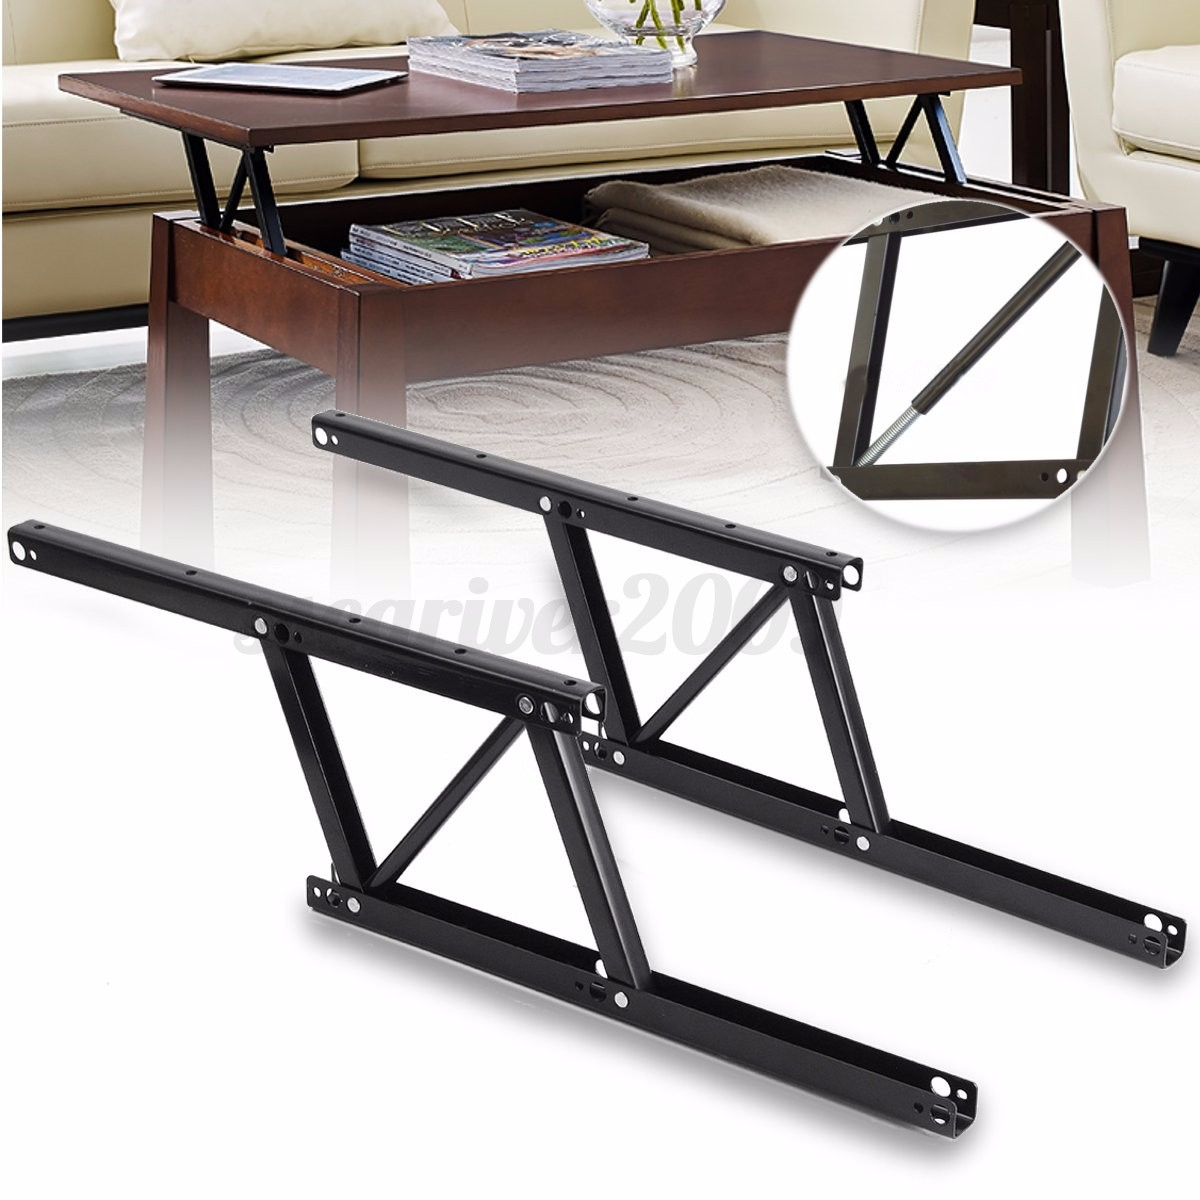 1pair lift up top coffee table sofa bed frame furniture for Coffee table with hinged top